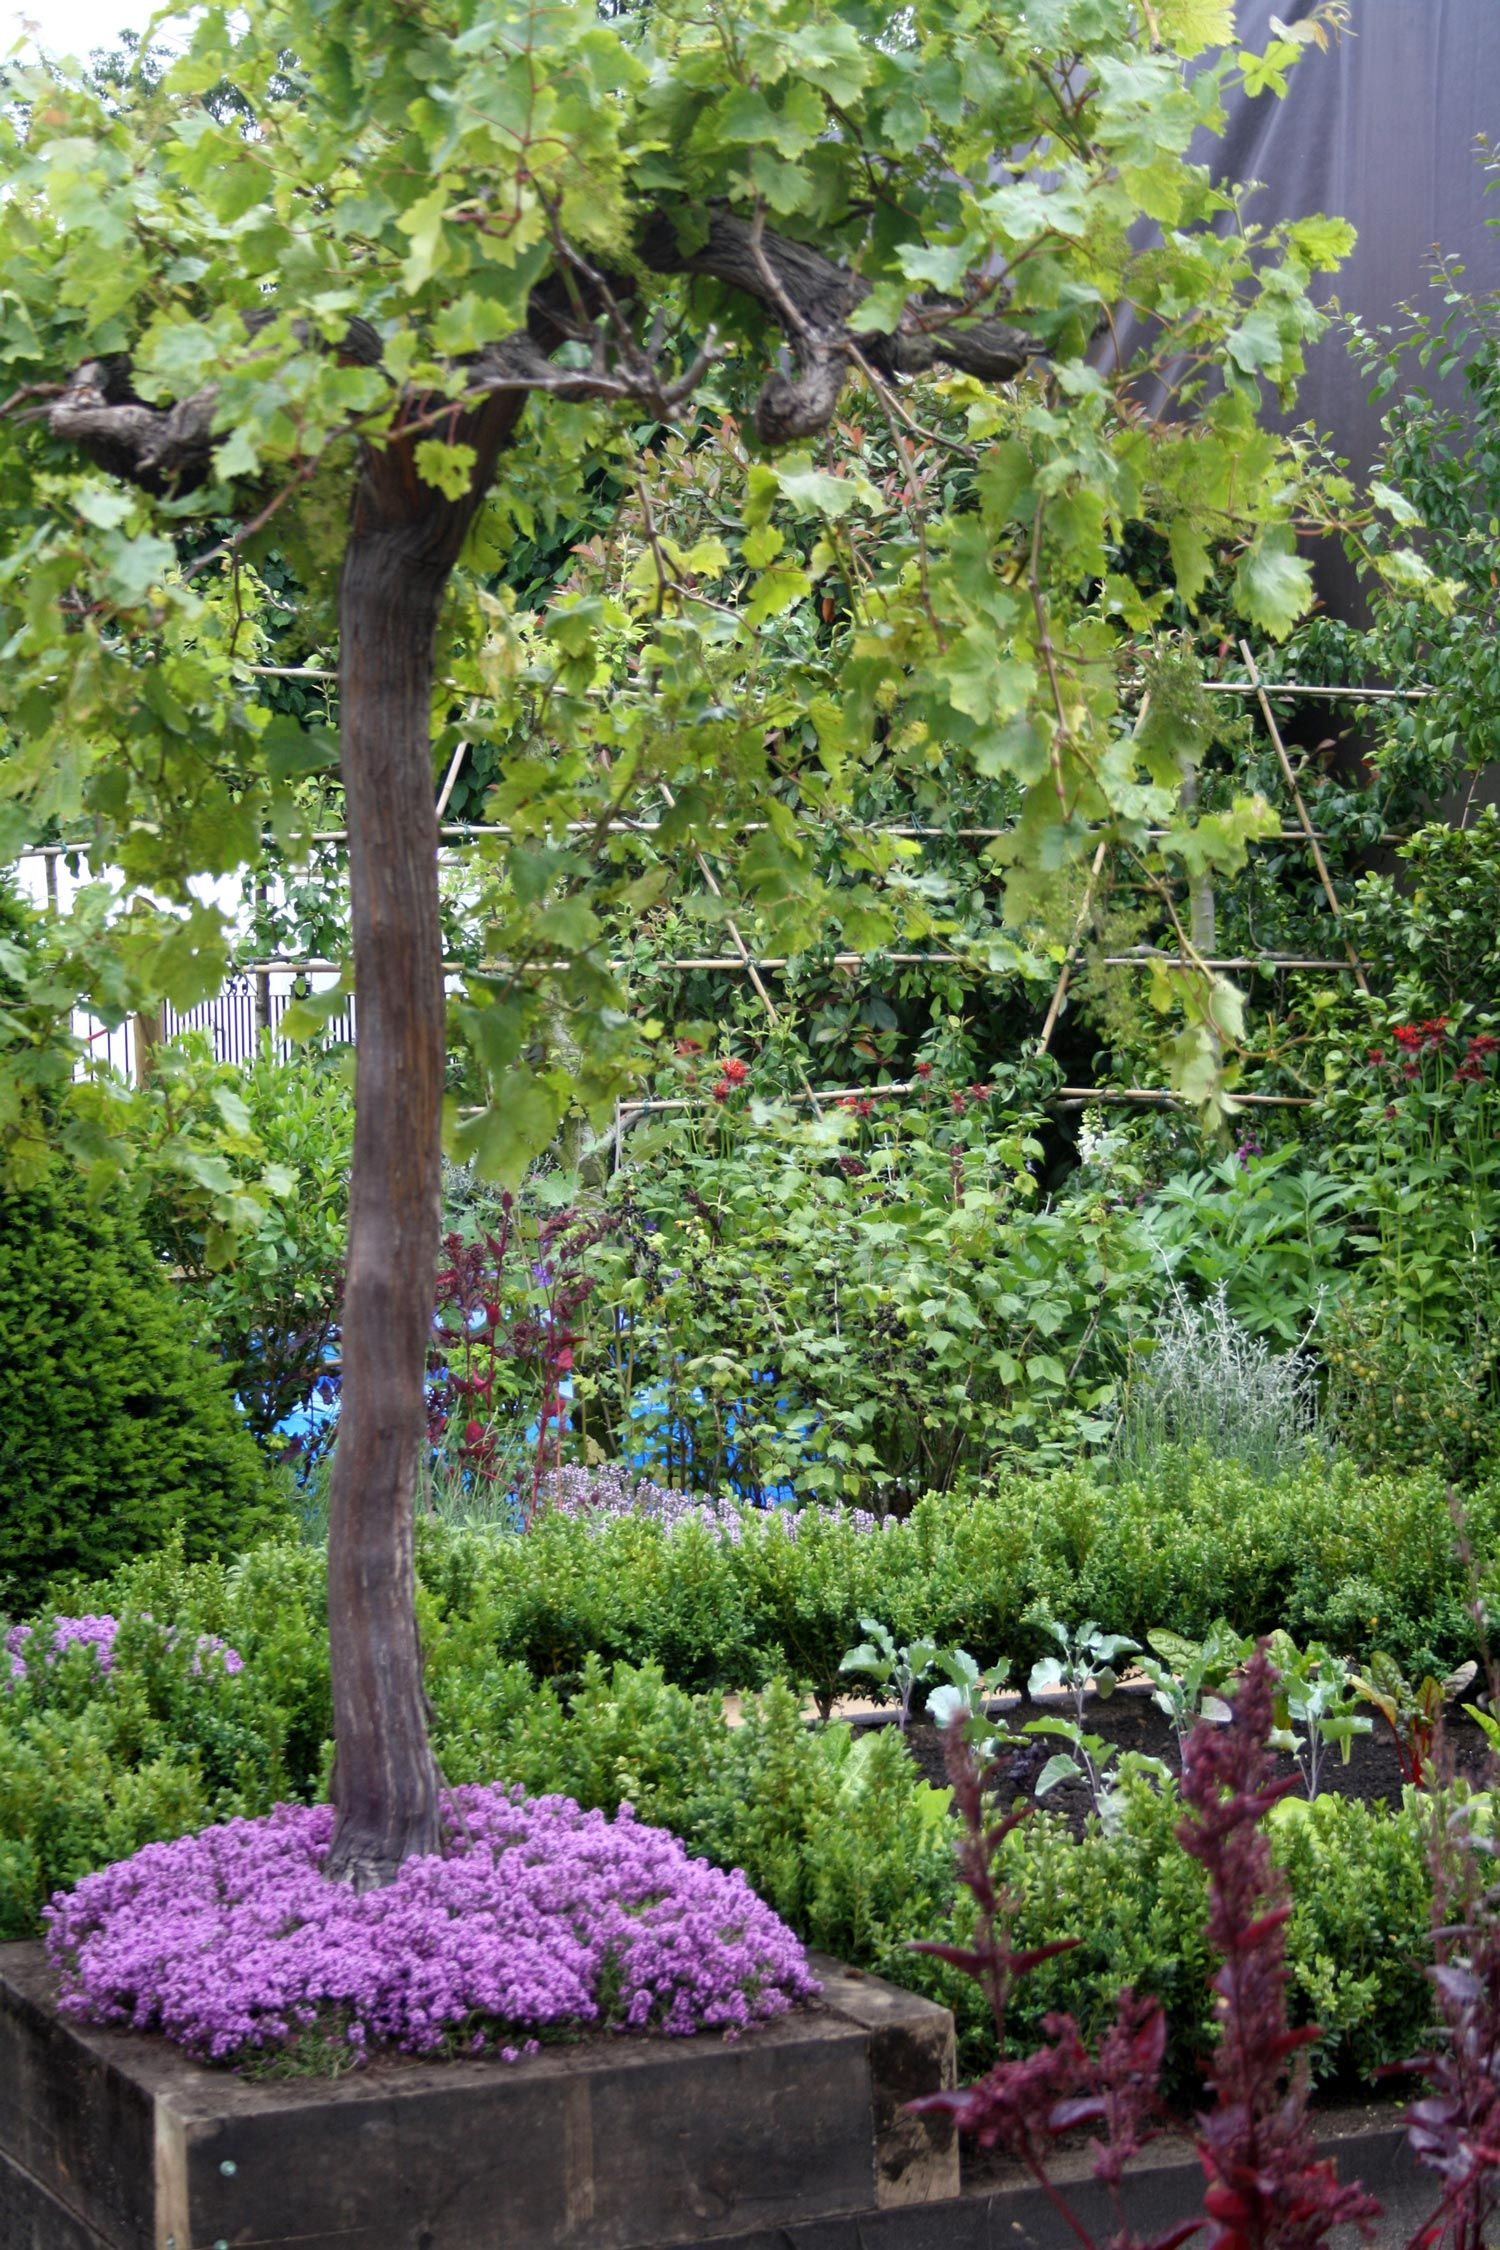 grape vines in pots - Google Search | growing grapes | Pinterest ...